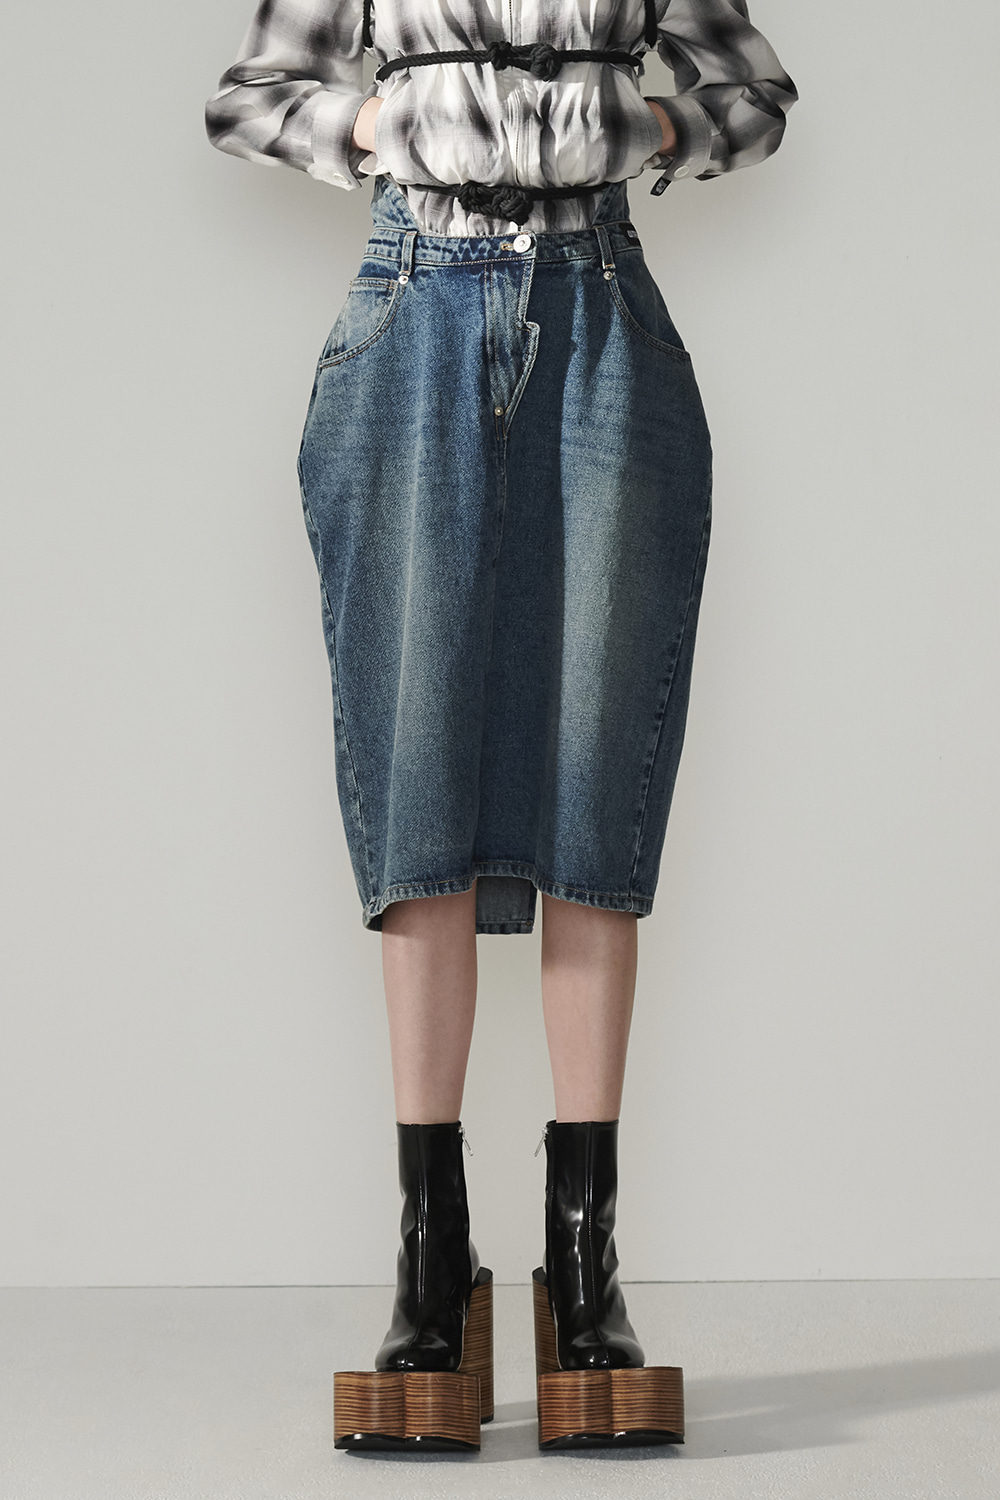 SS21 BACK-UP DEEP BLUE DENIM SKIRT